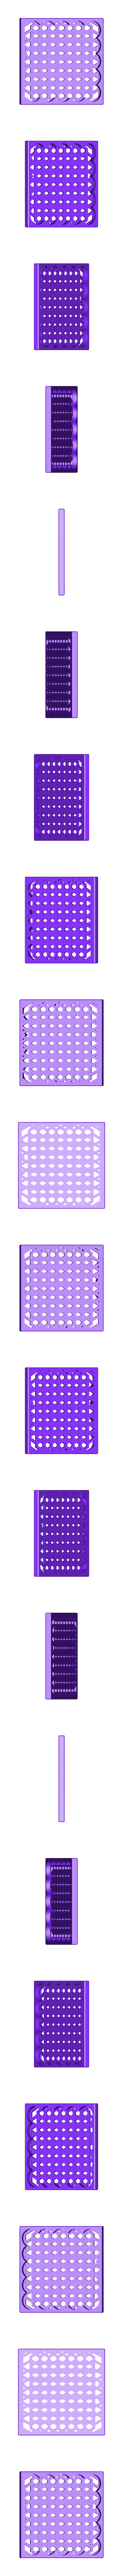 GeoBoard_Tray.stl Download free STL file Geoboard with Removable Pins, Geometry, Math • 3D printable design, LGBU